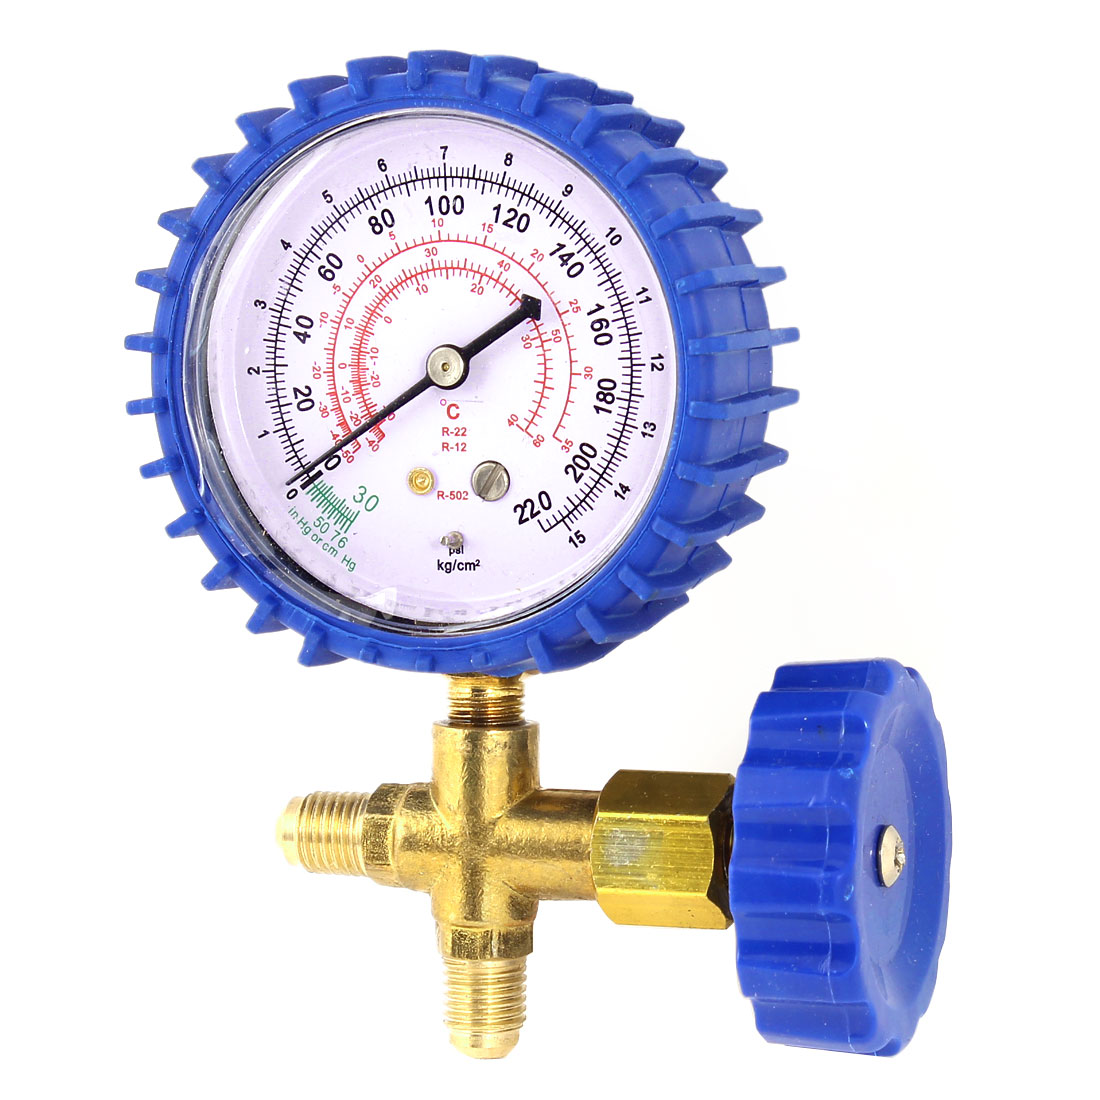 Air Conditioner Part 3-Way Valve 1/4NPT Thread Single Manifold Gauge 0-220psi